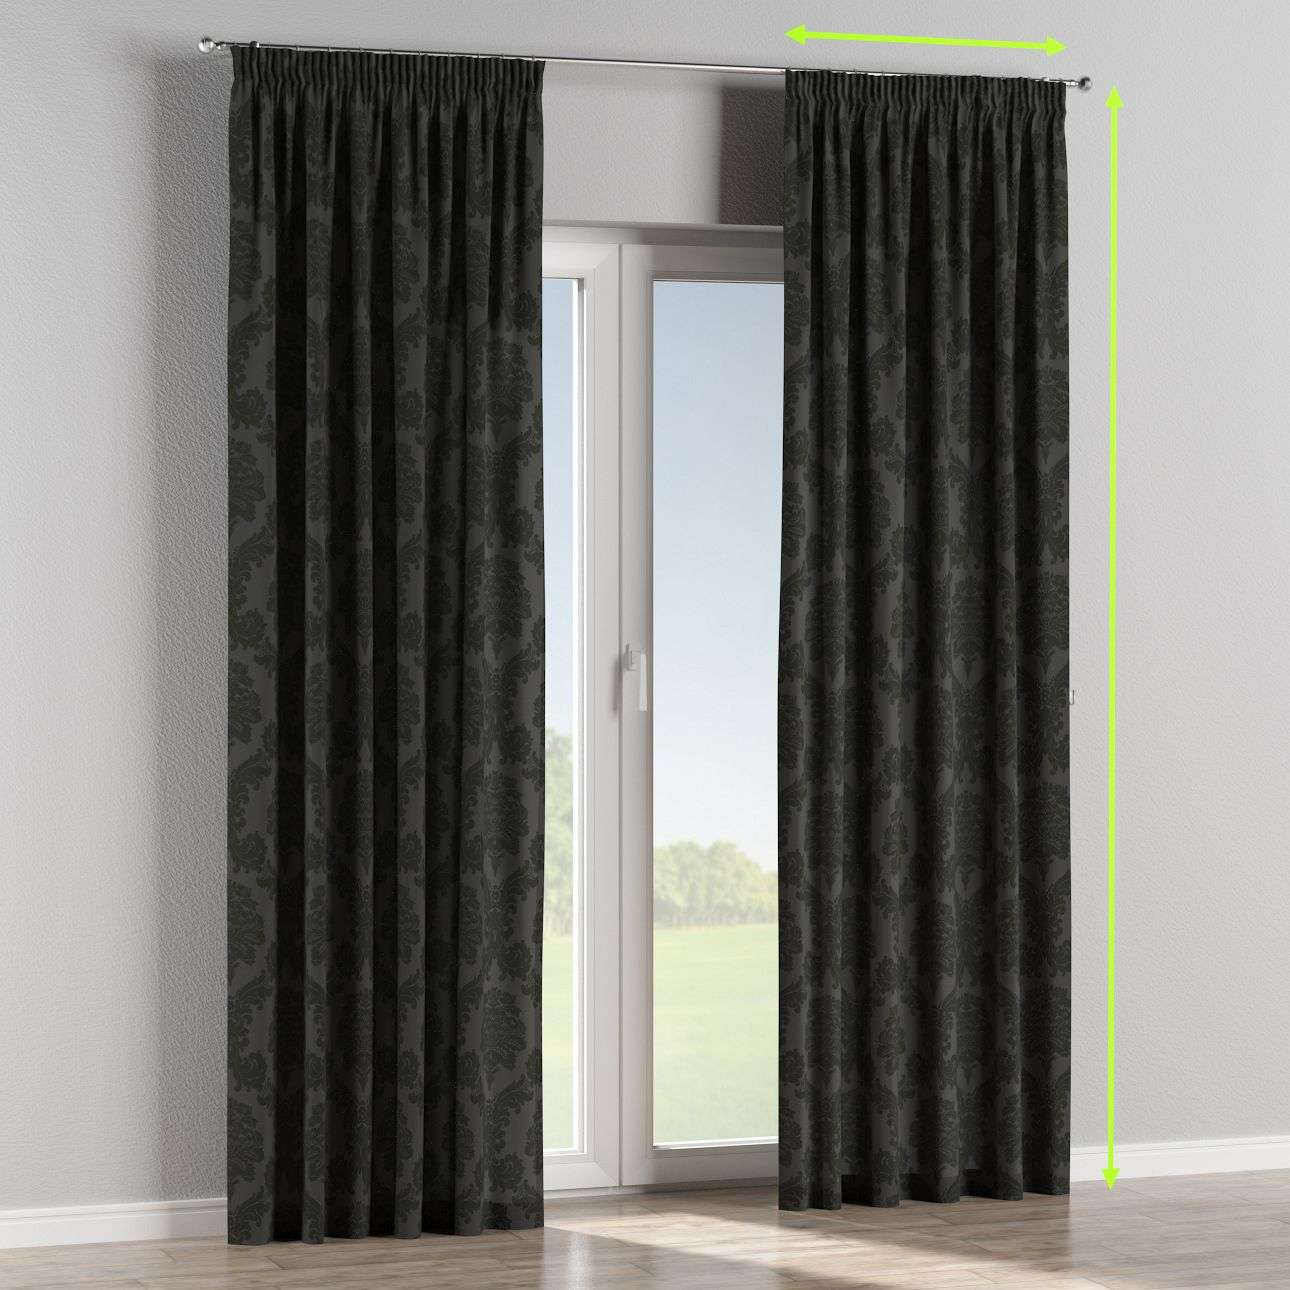 Pencil pleat lined curtains in collection Damasco, fabric: 613-32